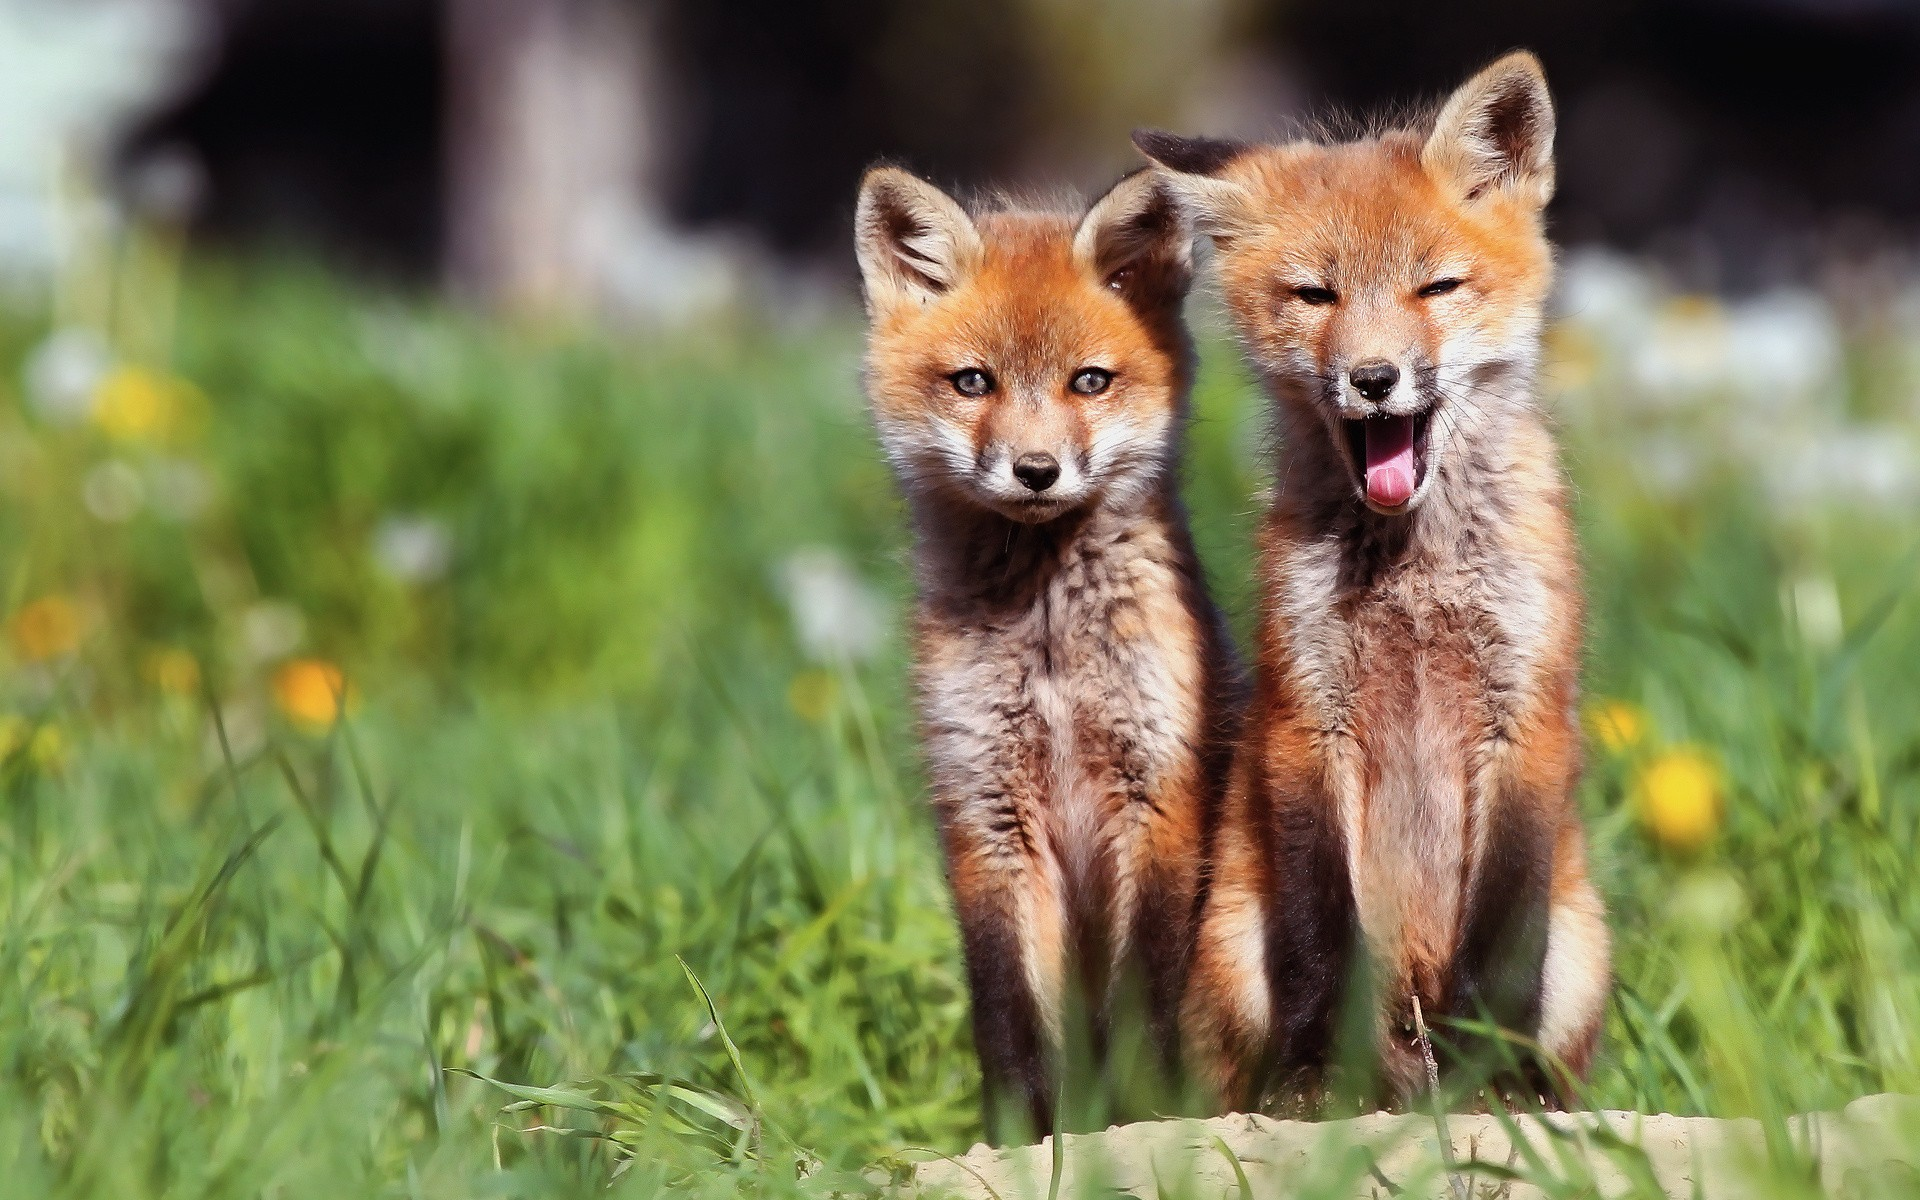 Animals baby animals foxes wallpaper 1920x1200 8148 WallpaperUP 1920x1200